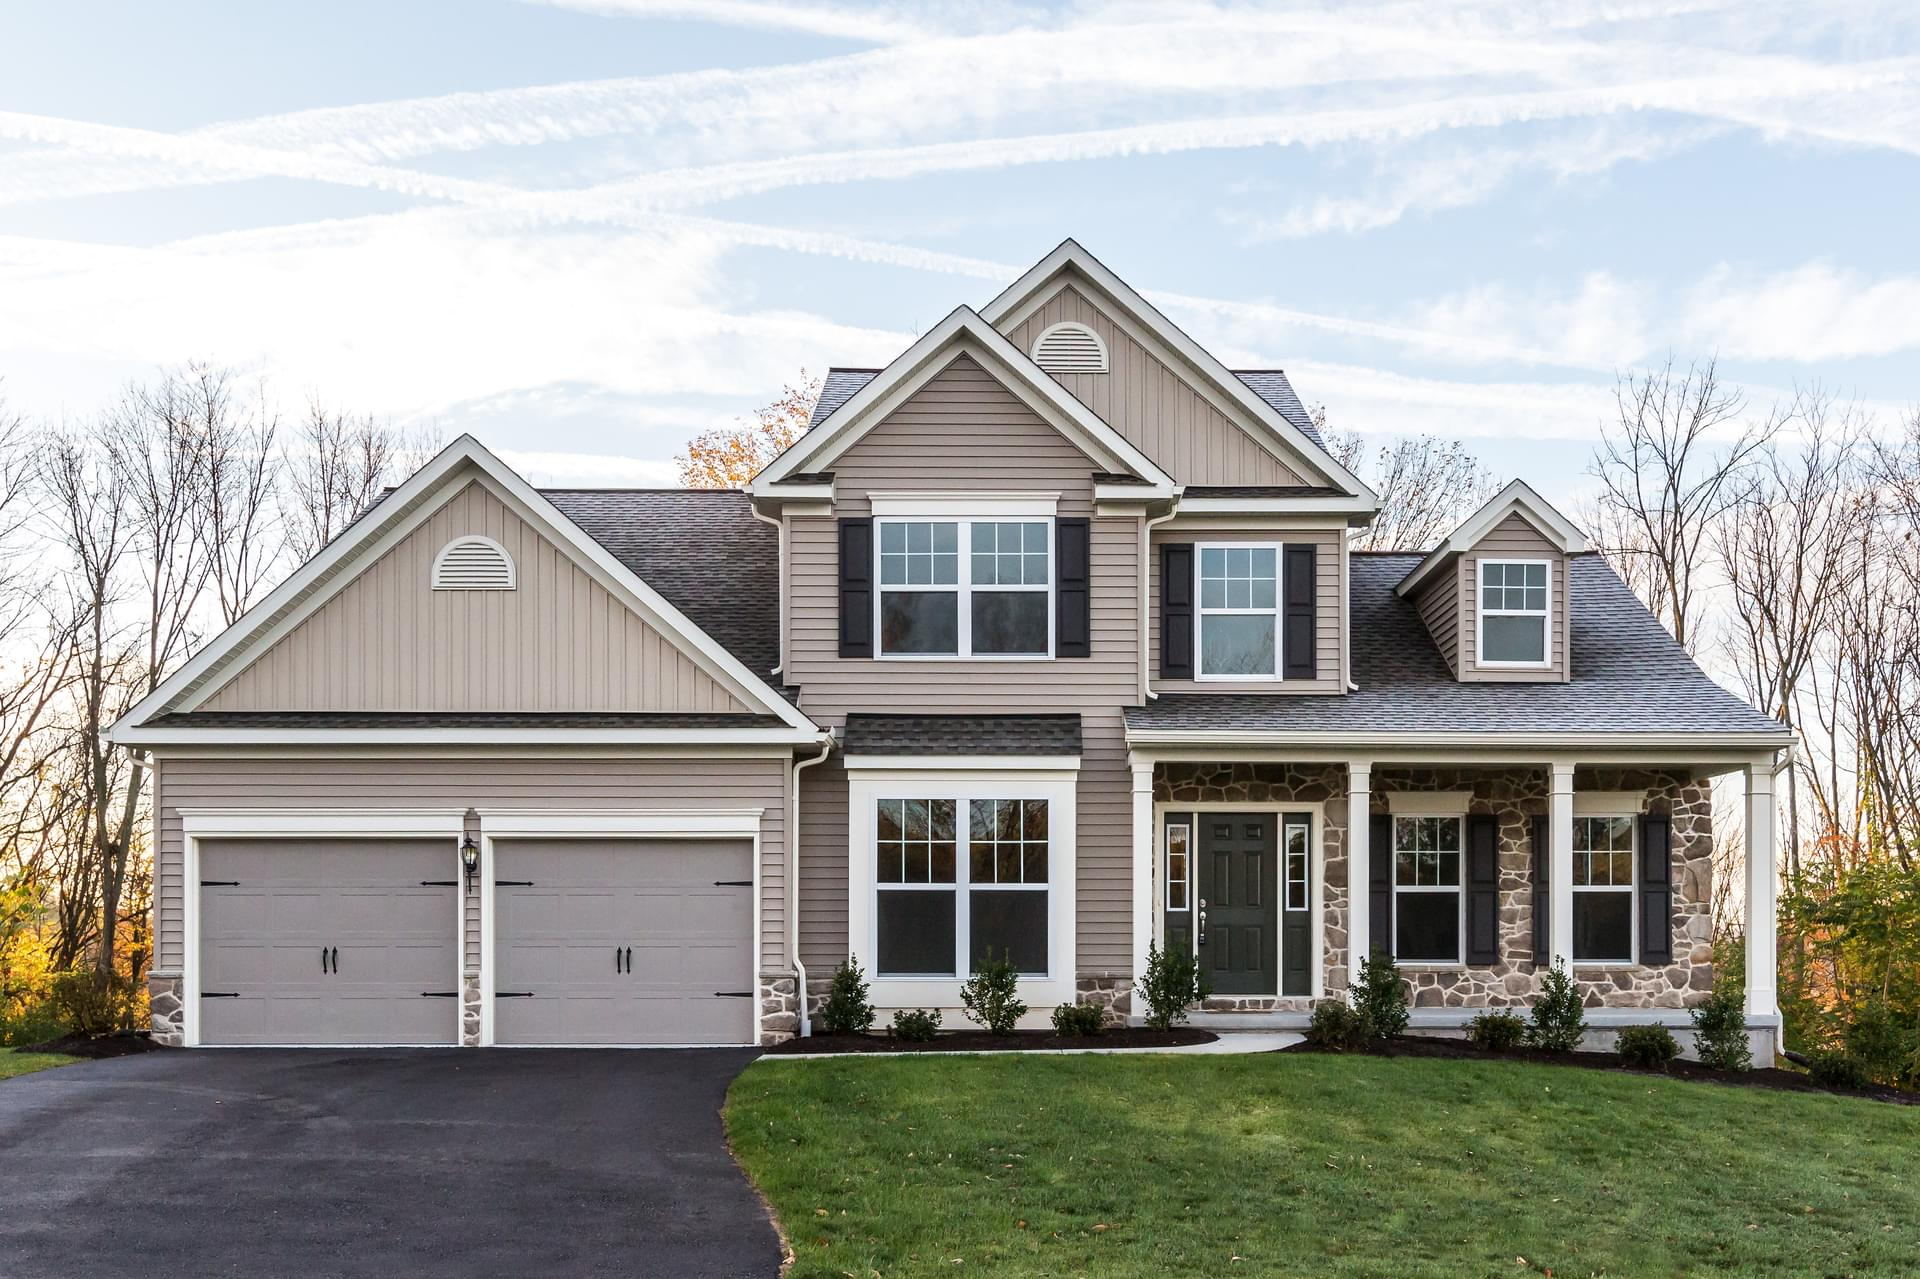 Berks Homes in Thornhill